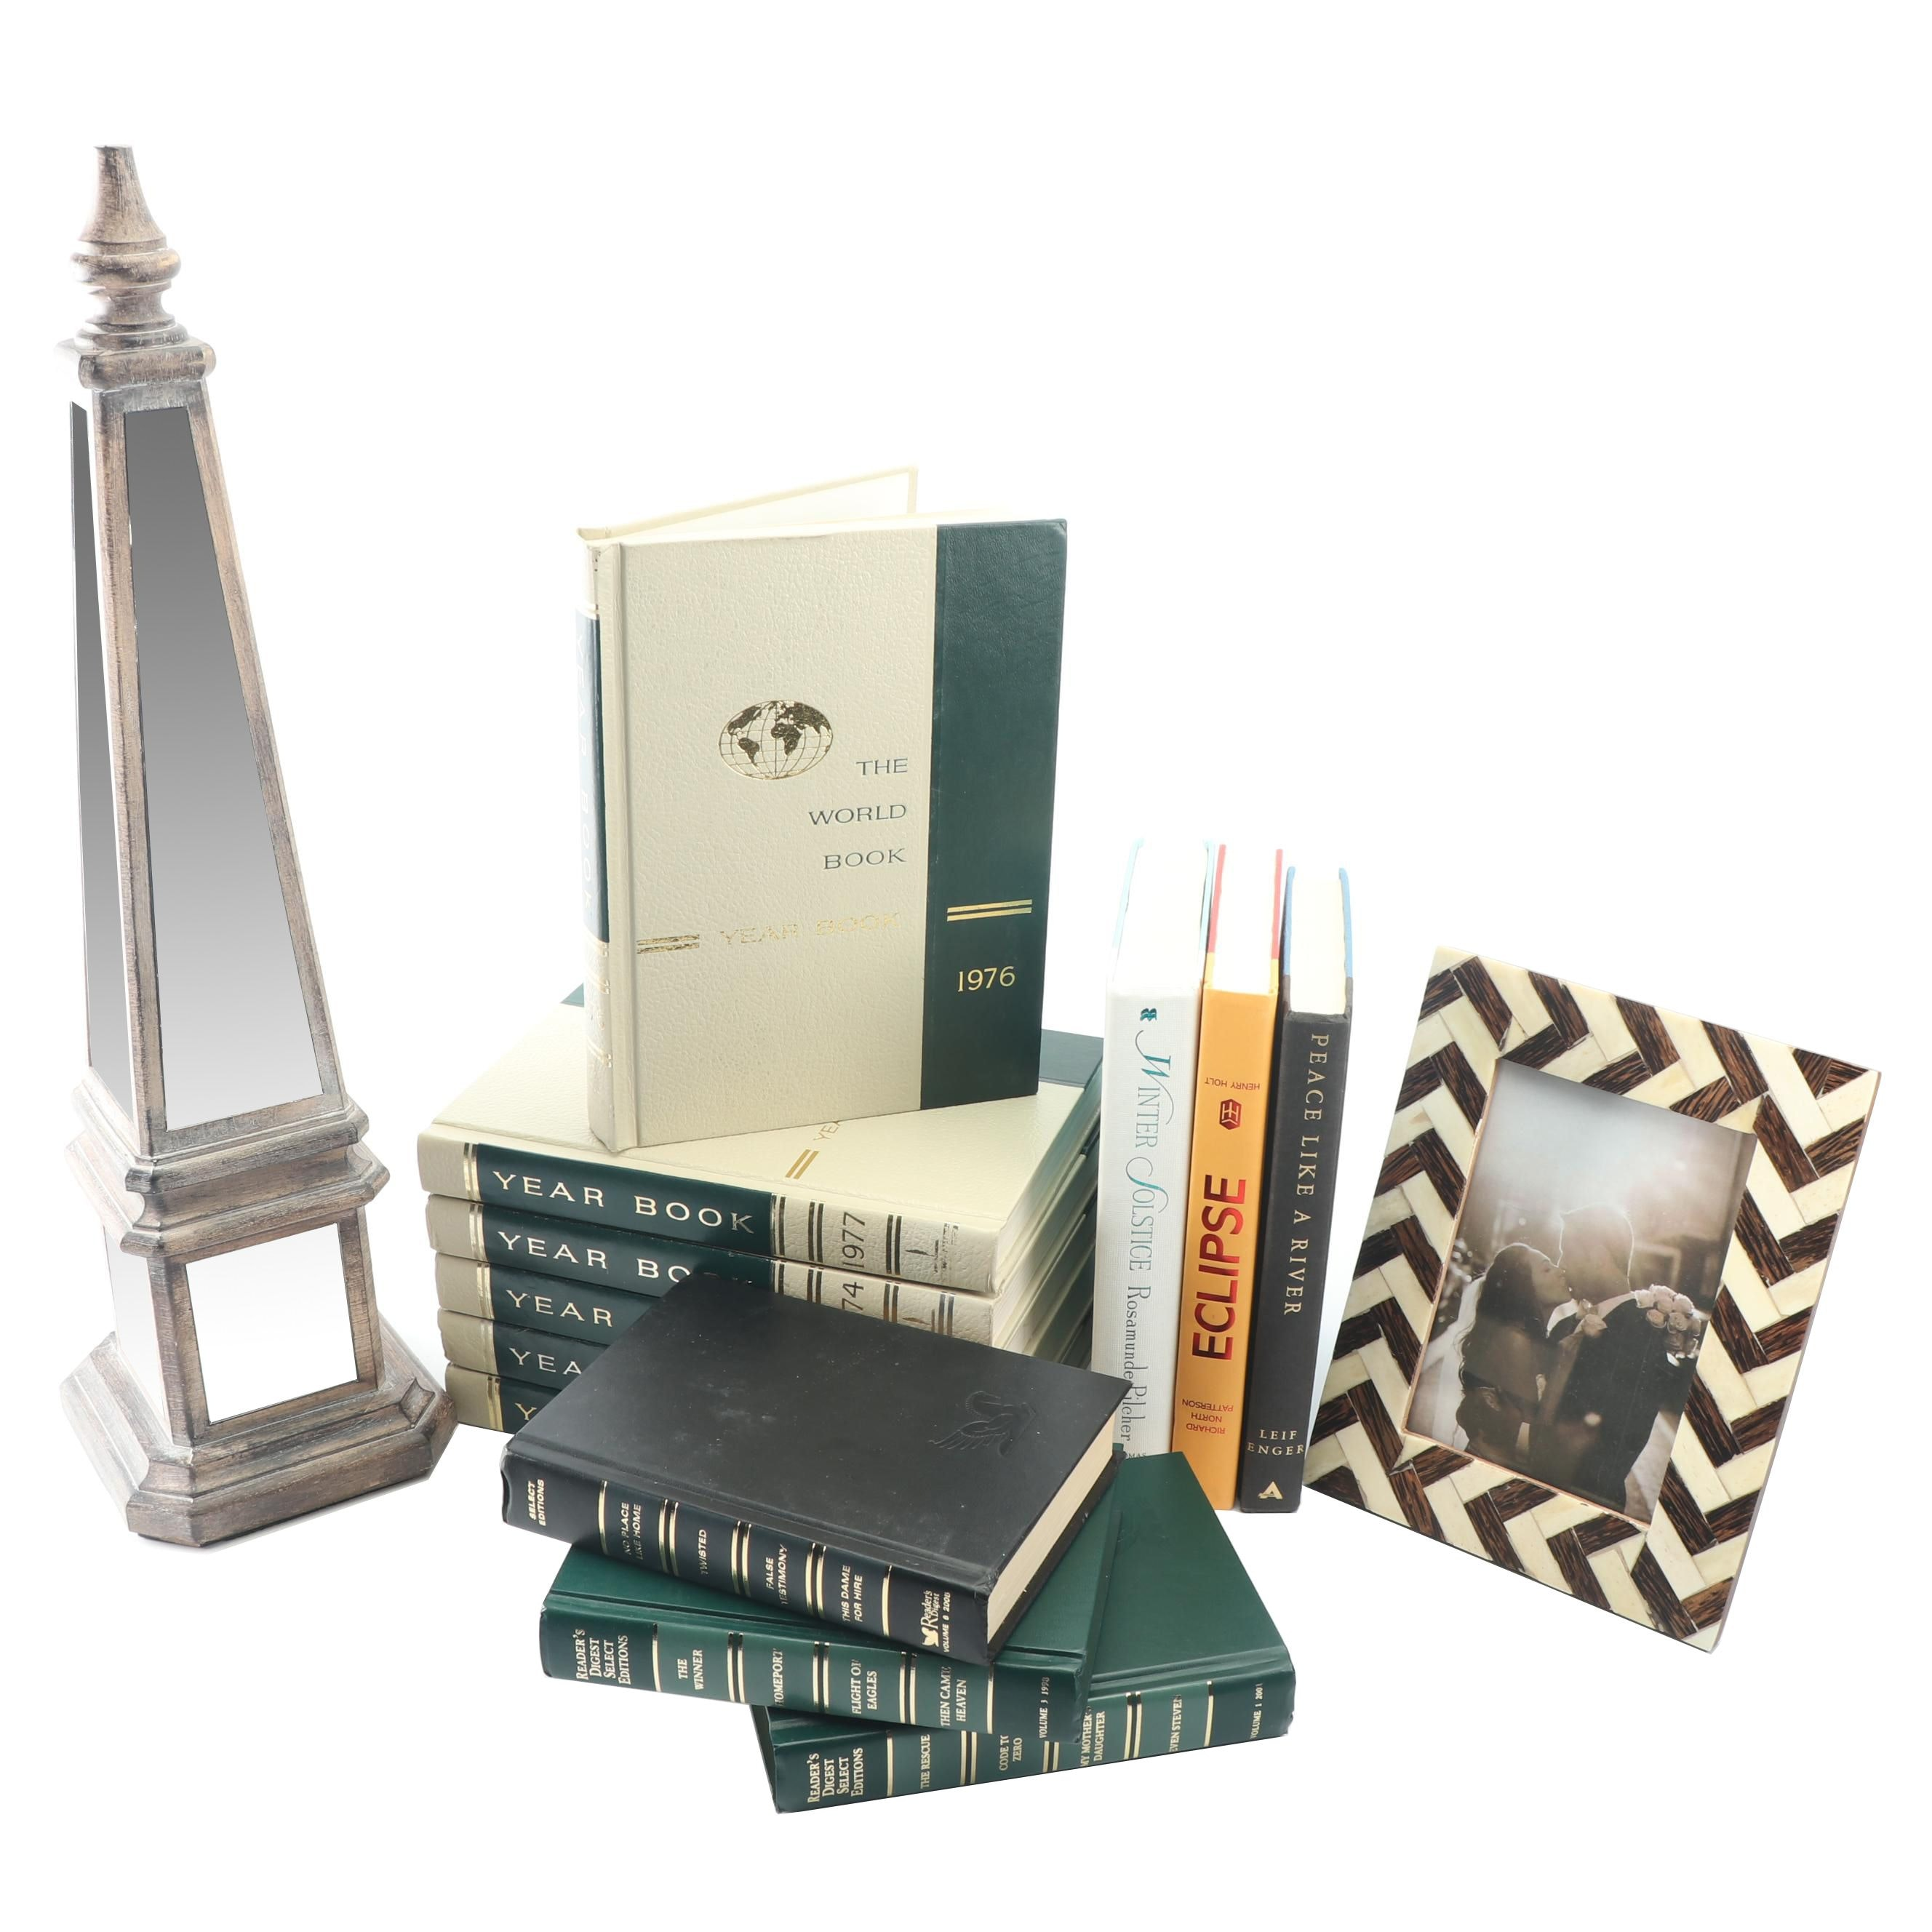 Mirrored Obelisk with Black and White Chevron Frame and Hardcover Books